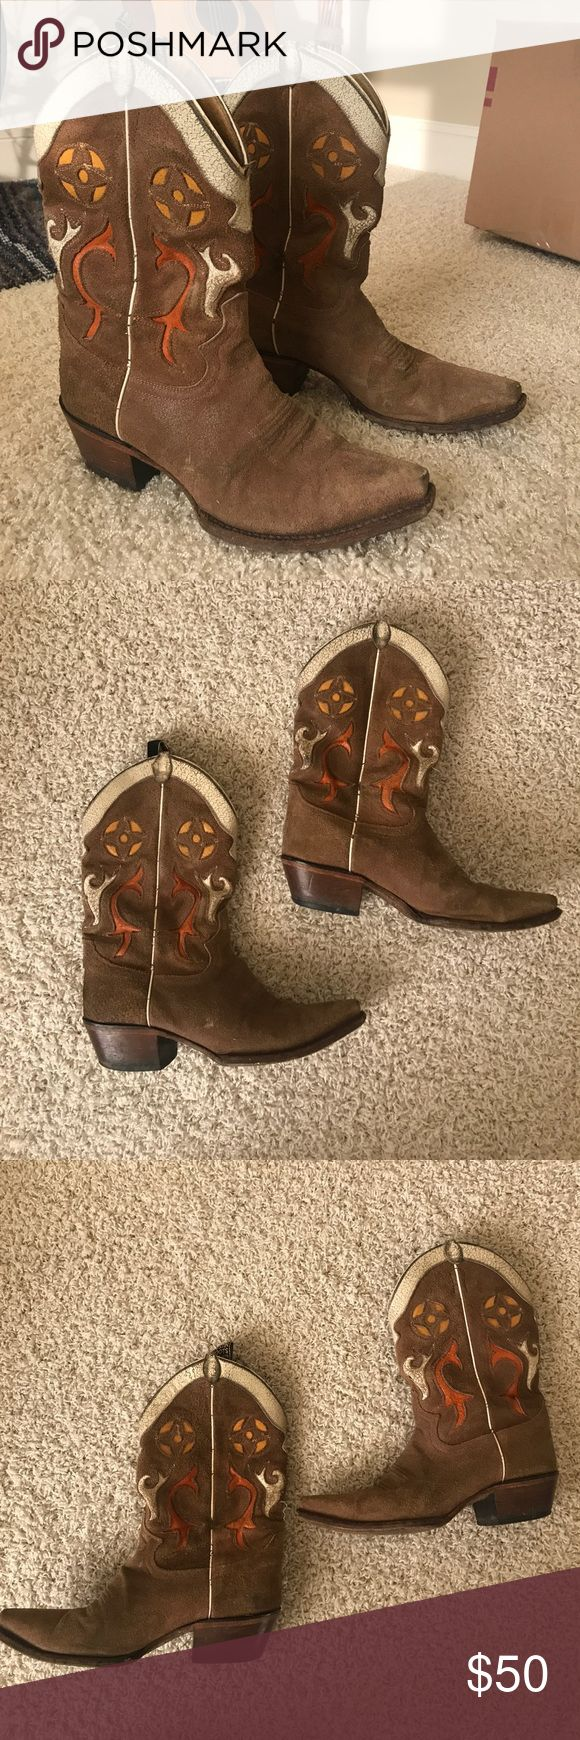 Justin's Cowboy Boots - women's 8 Leather A pair of well loved, but well taken care of cowboy boots from Justin's. These are ready to be re-heeled, which is typically $20 at any shoe or boot store. These were worn to many University of Texas home games… The inlay of the design is a burnt orange color, white, and a mustard yellow. The crackling of the colored leather is intentional and how they came new. Natural rough (NOT suede) leather. These hold up to wear very well. Originally $300 at…